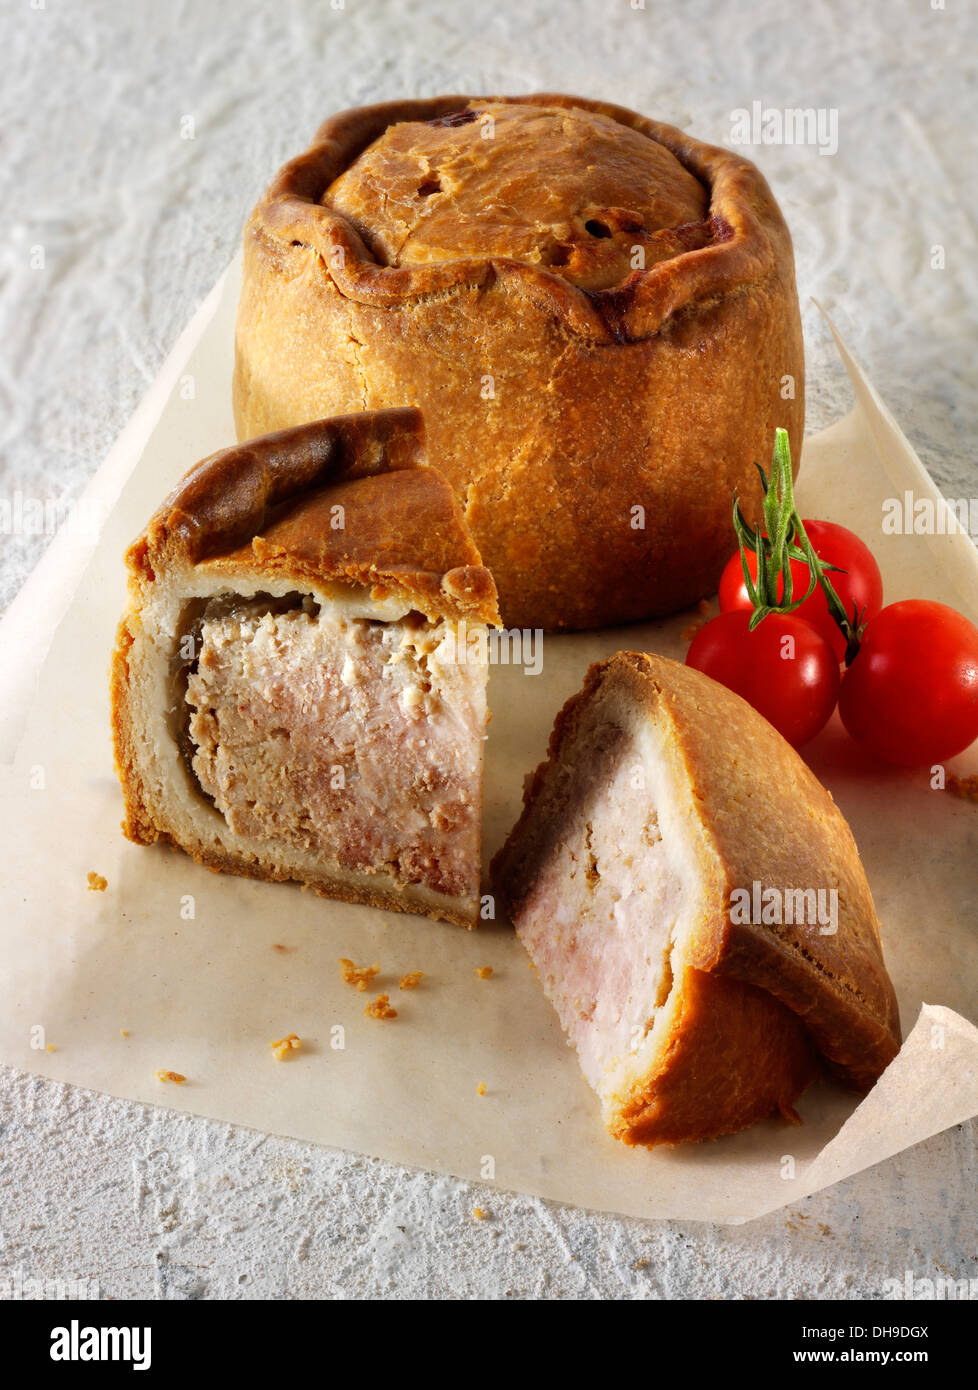 Traditional British pork pastry pie ready to eat - Stock Image